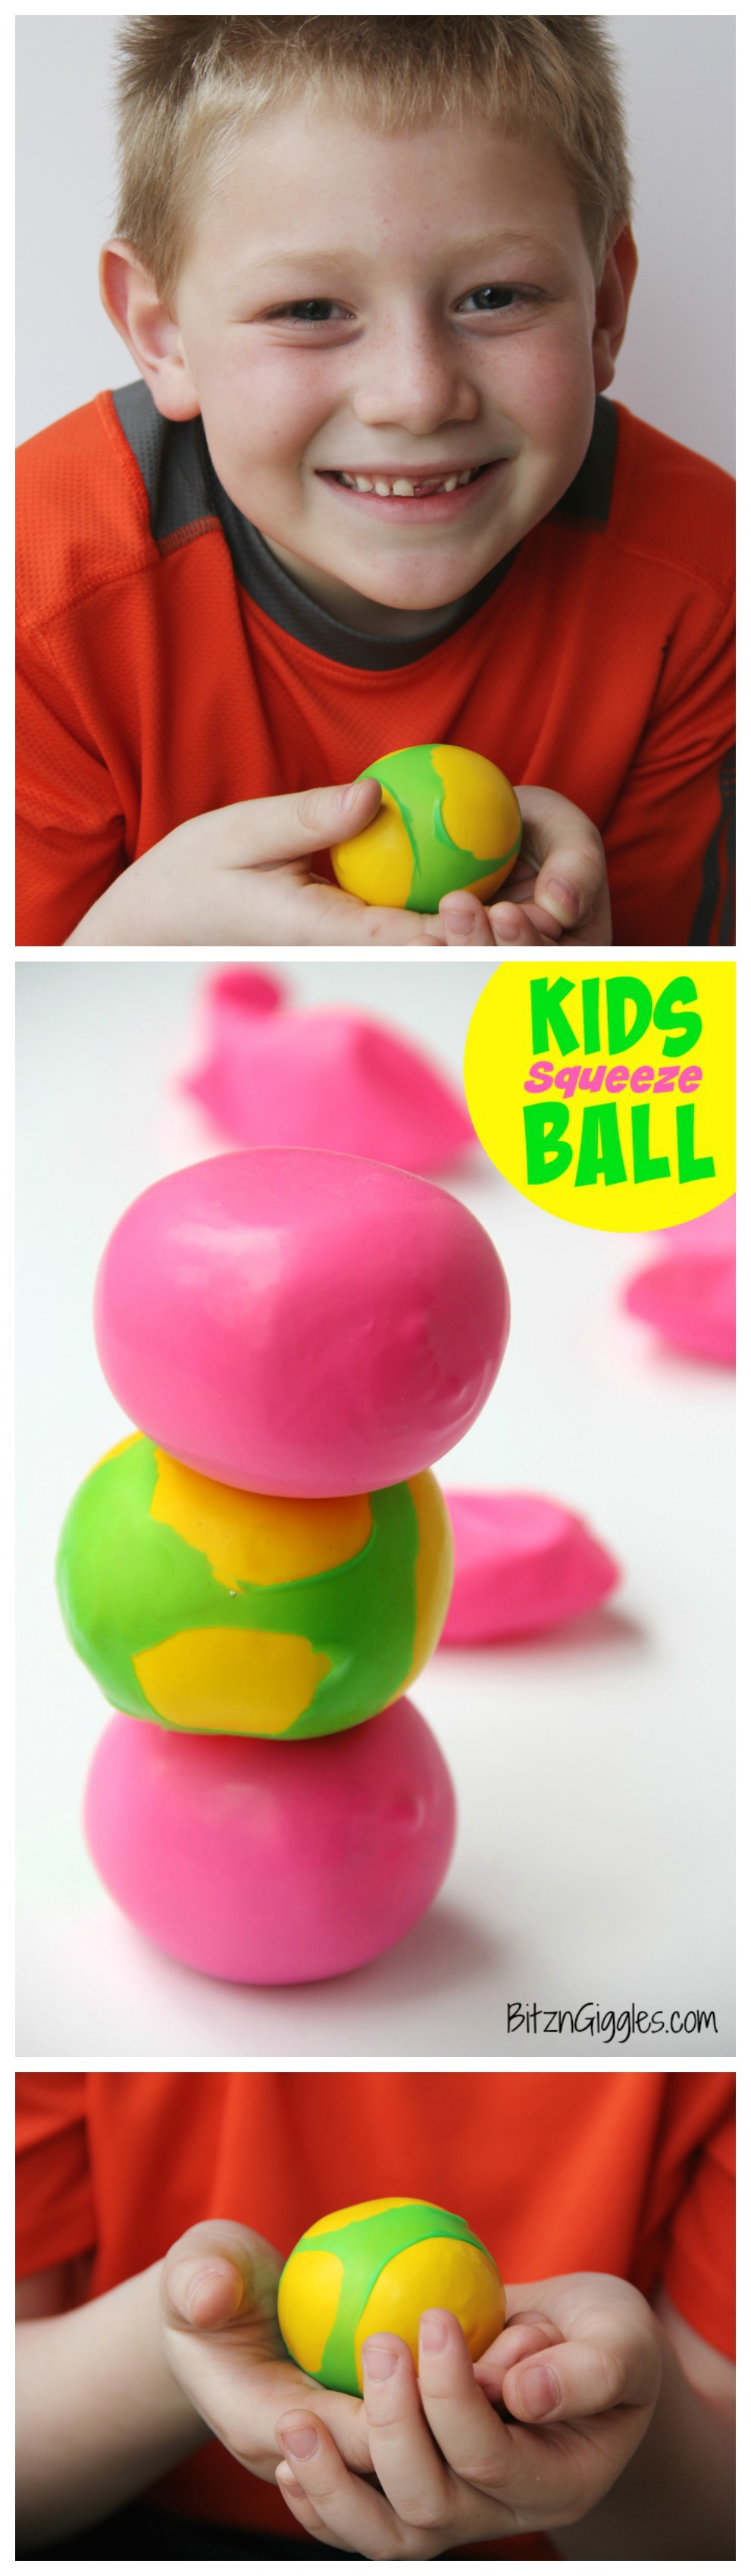 how to make stress ball for kids